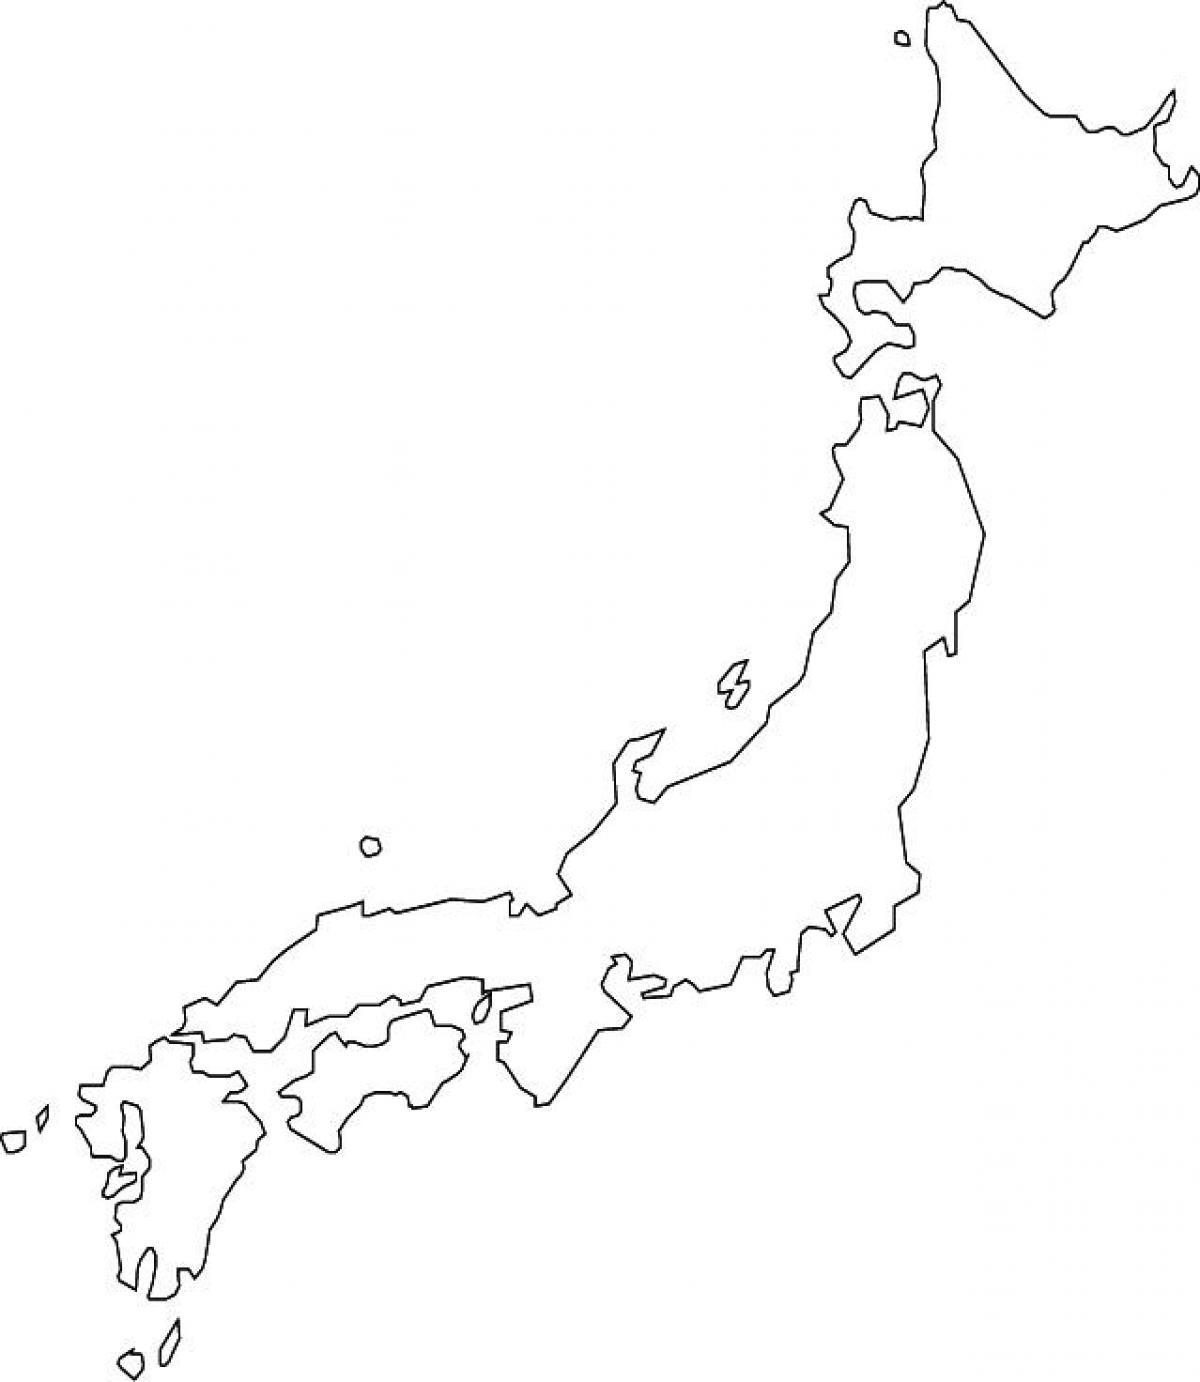 map of japan coloring page map of japan coloring page free printable coloring pages map japan of coloring page